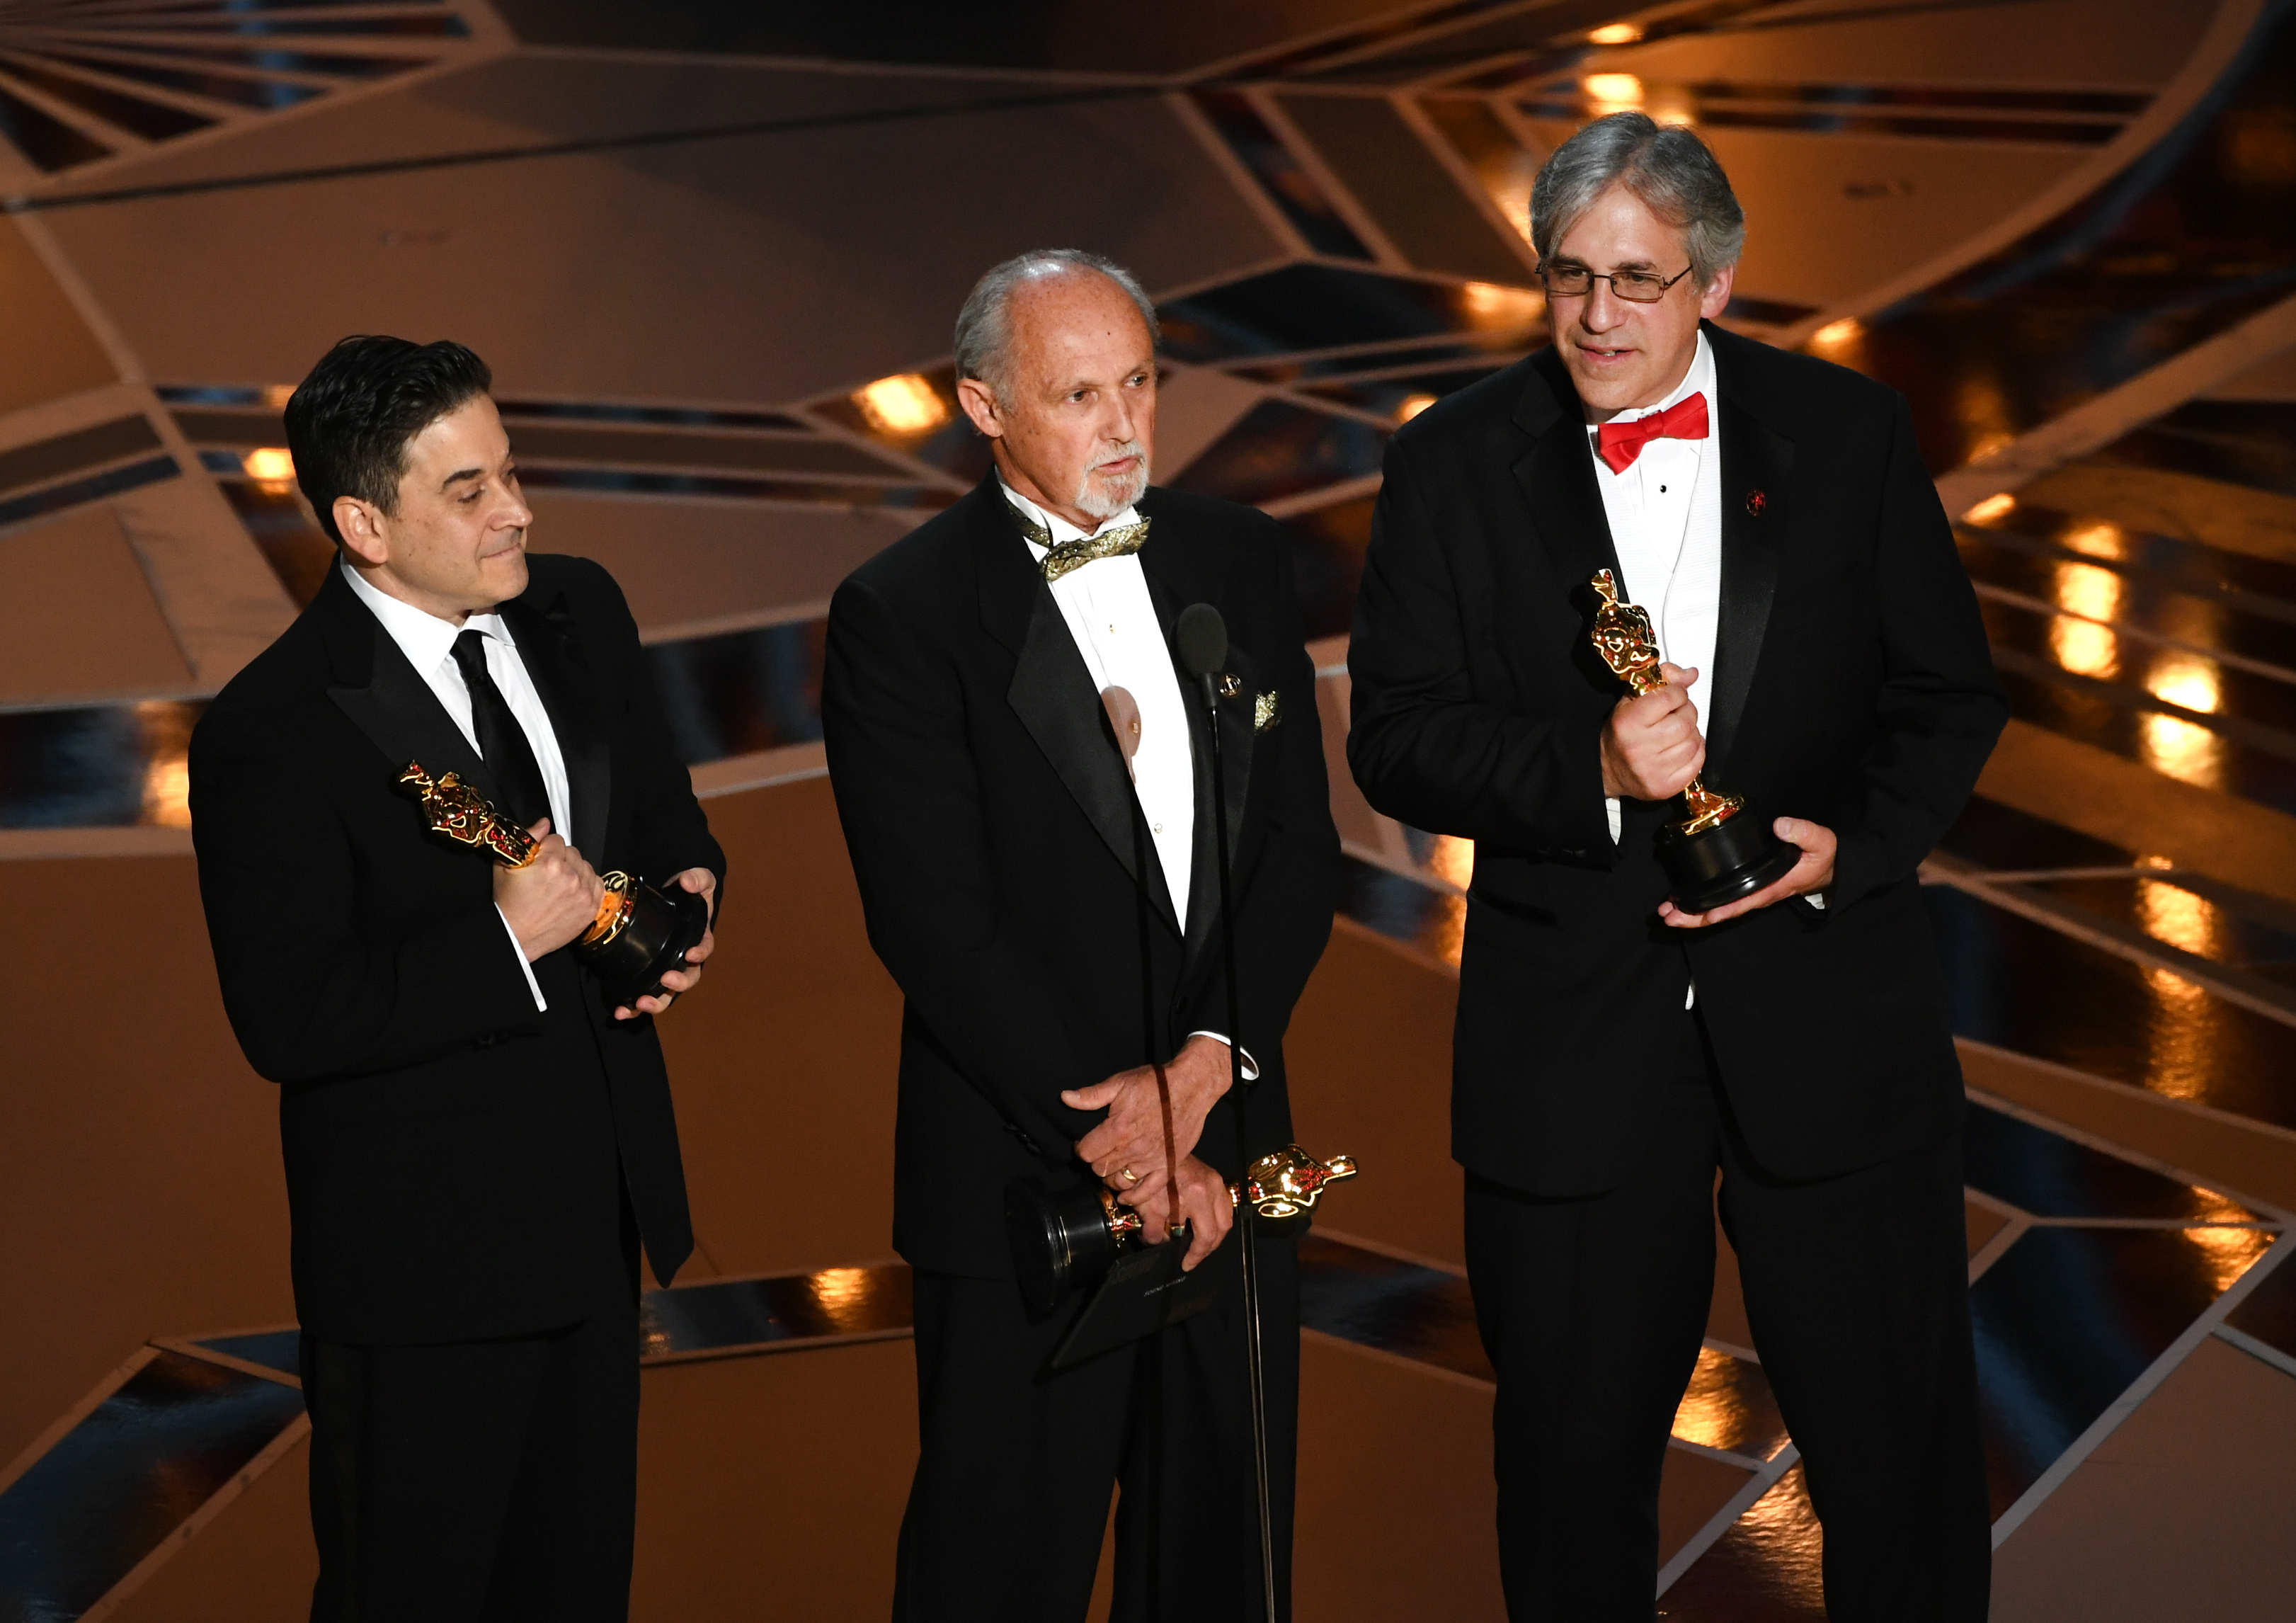 Sound mixers Gary A. Rizzo, Gregg Landaker and Mark Weingarten accept Best Sound Mixing for 'Dunkirk' onstage during the 90th Annual Academy Awards at the Dolby Theatre at Hollywood & Highland Center on March 4, 2018 in Hollywood.